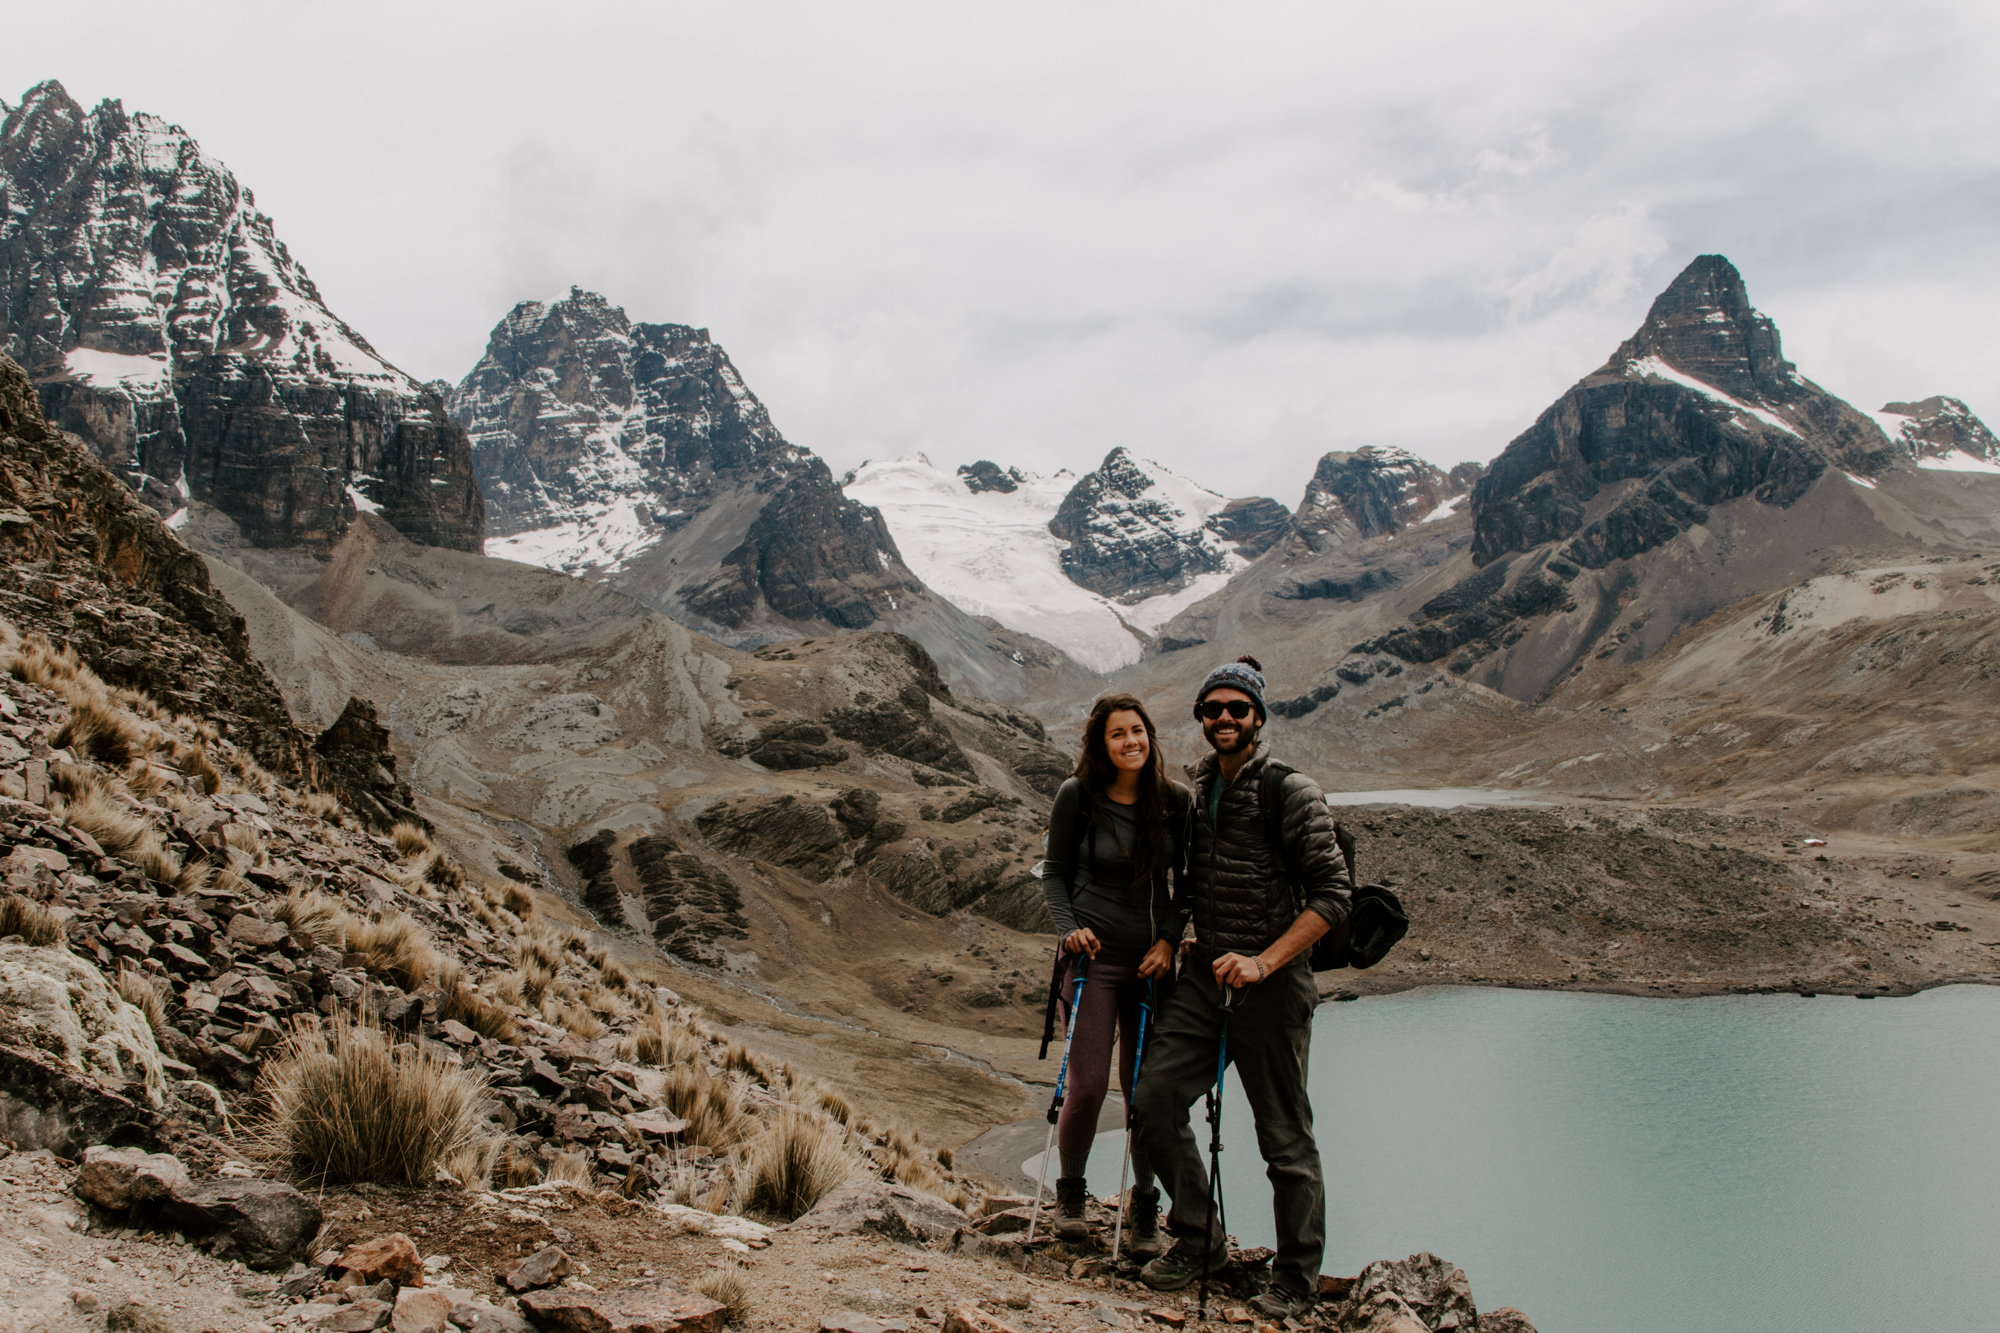 couple-posing-near-water-with-mountains.jpg